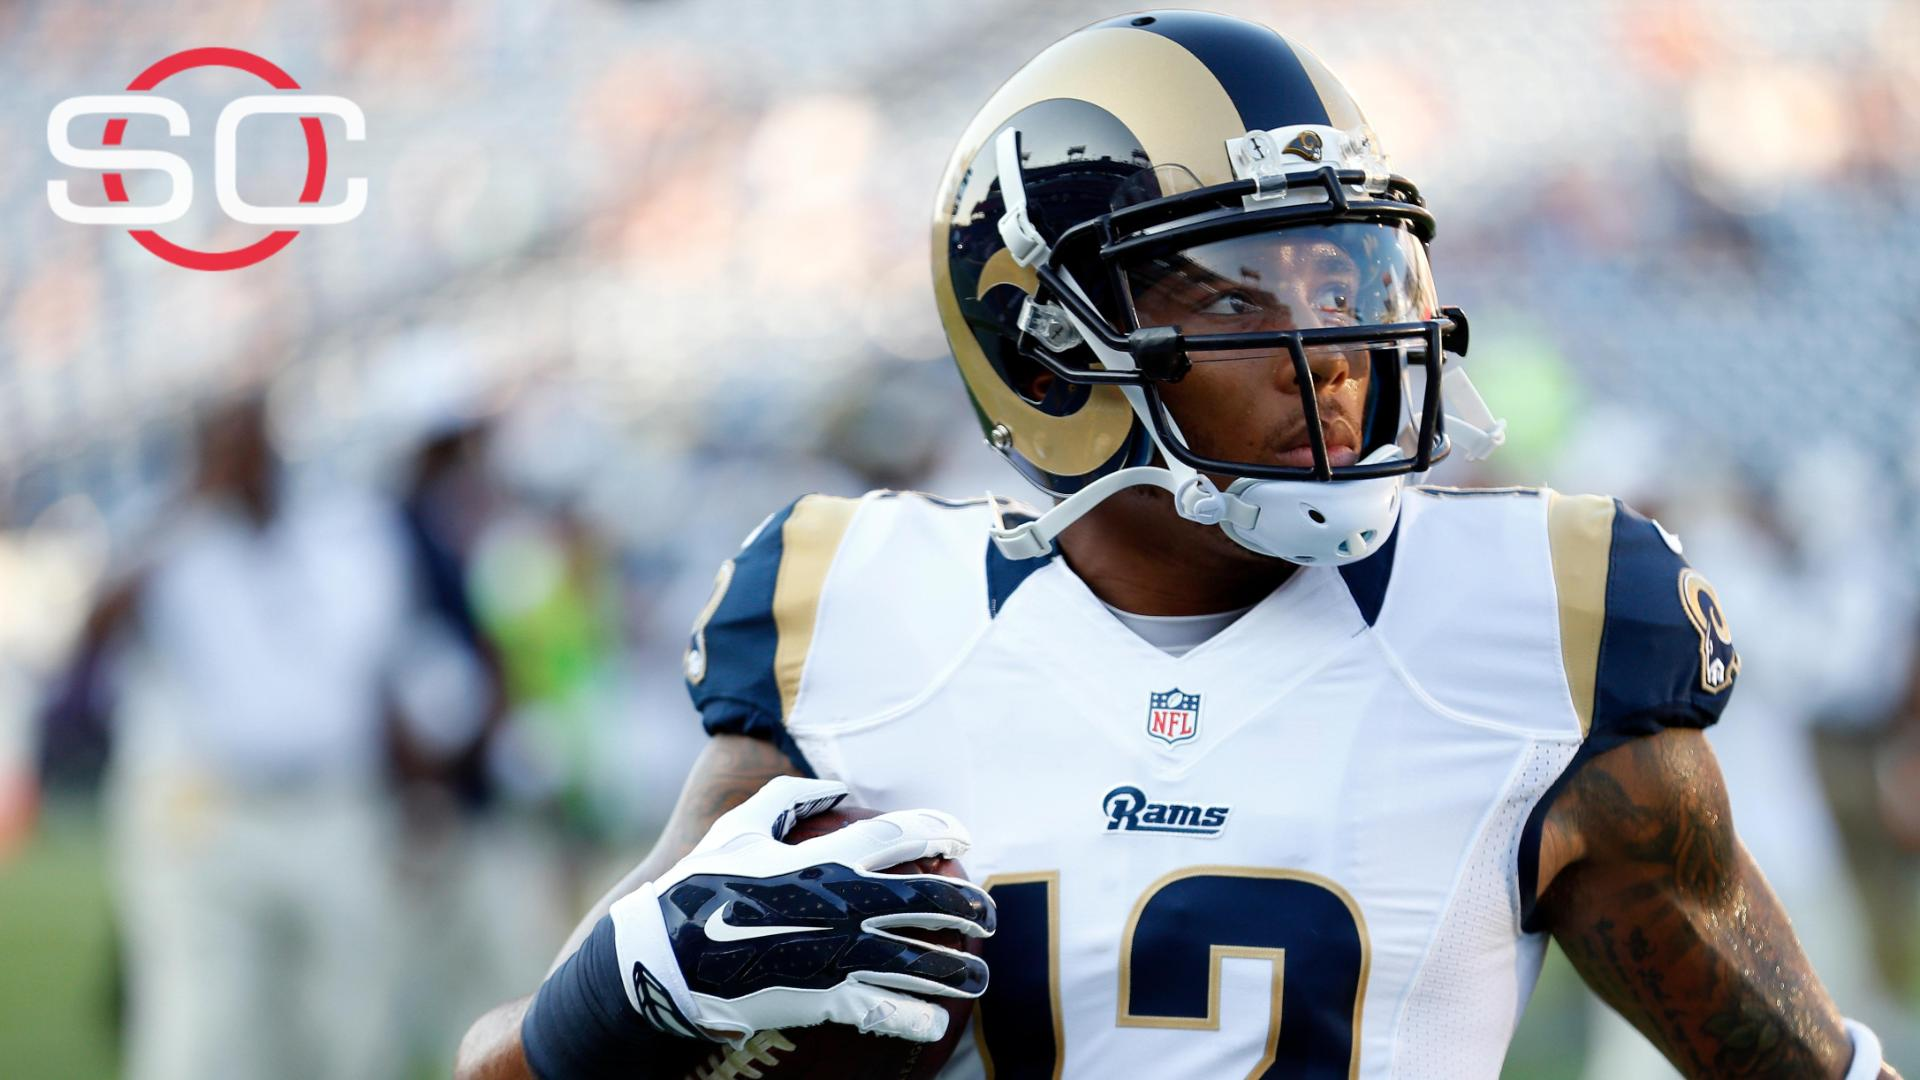 ee80be3a8 Rams WR Stedman Bailey out of surgery after being shot in head - ABC ...